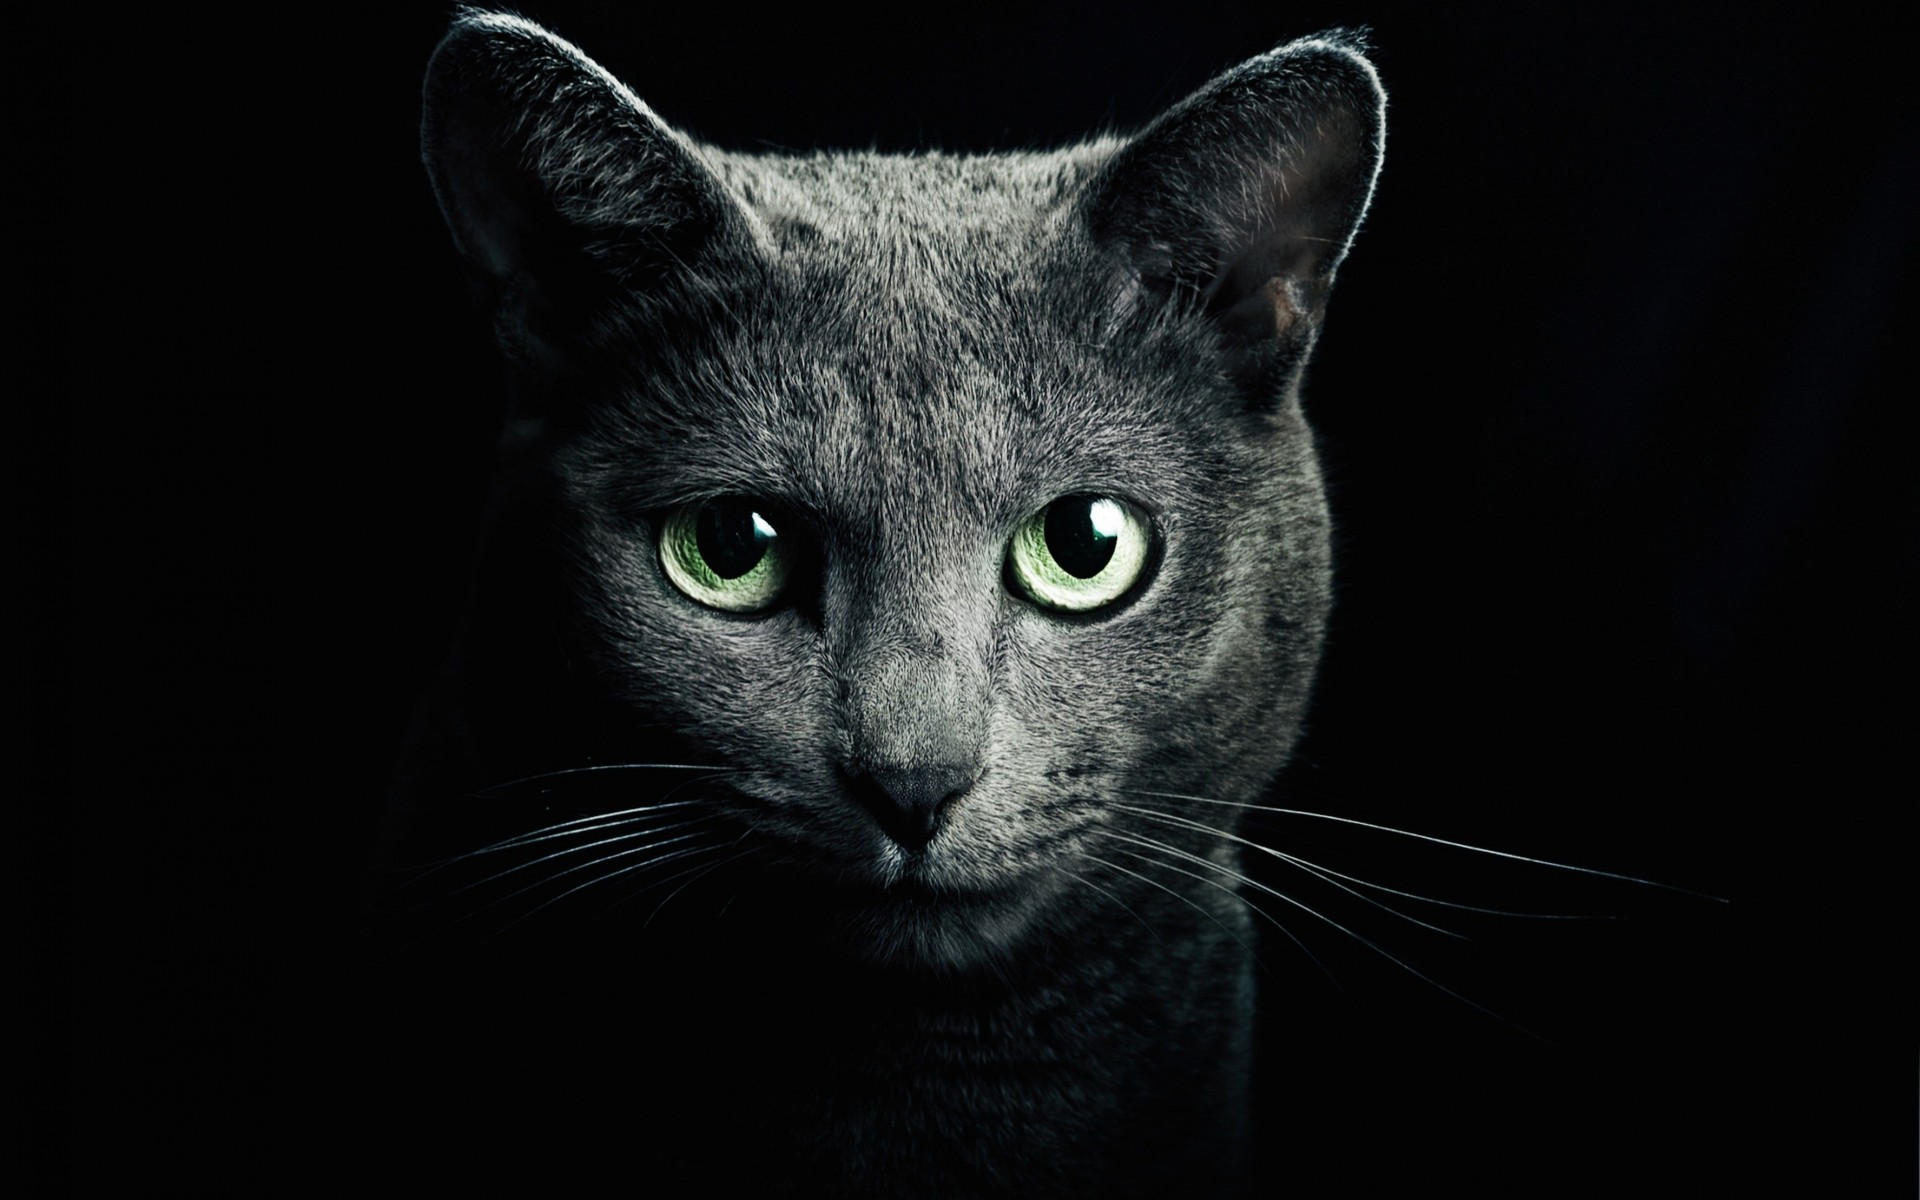 Russian Blue Cat Wallpaper for Desktop 1920x1200